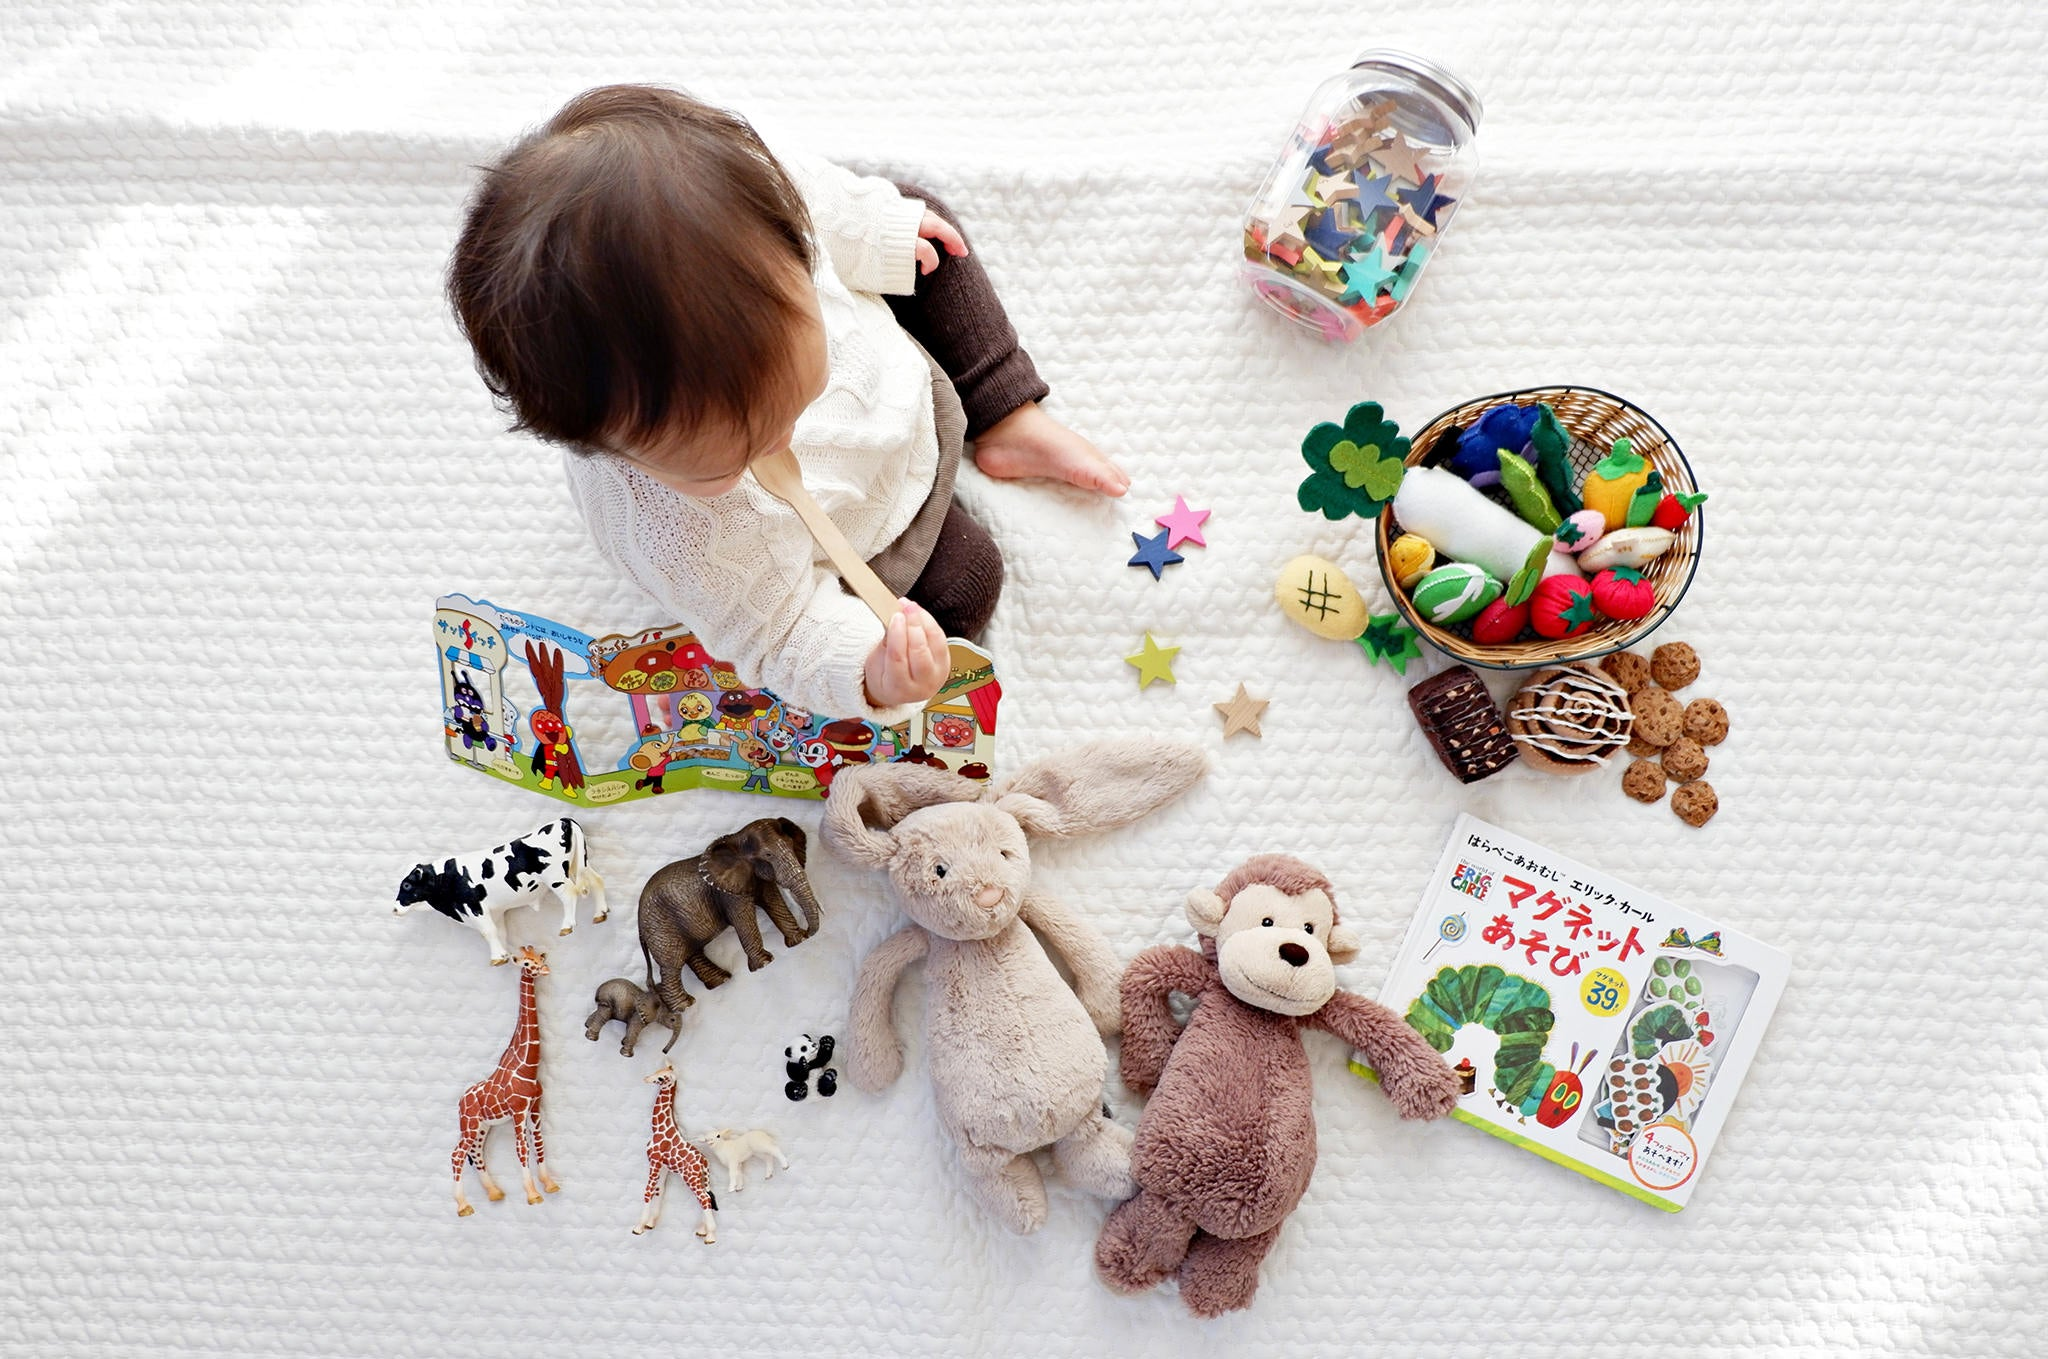 Image of little kid with brown hair sitting on the floor surrounded by non-electronic toys.